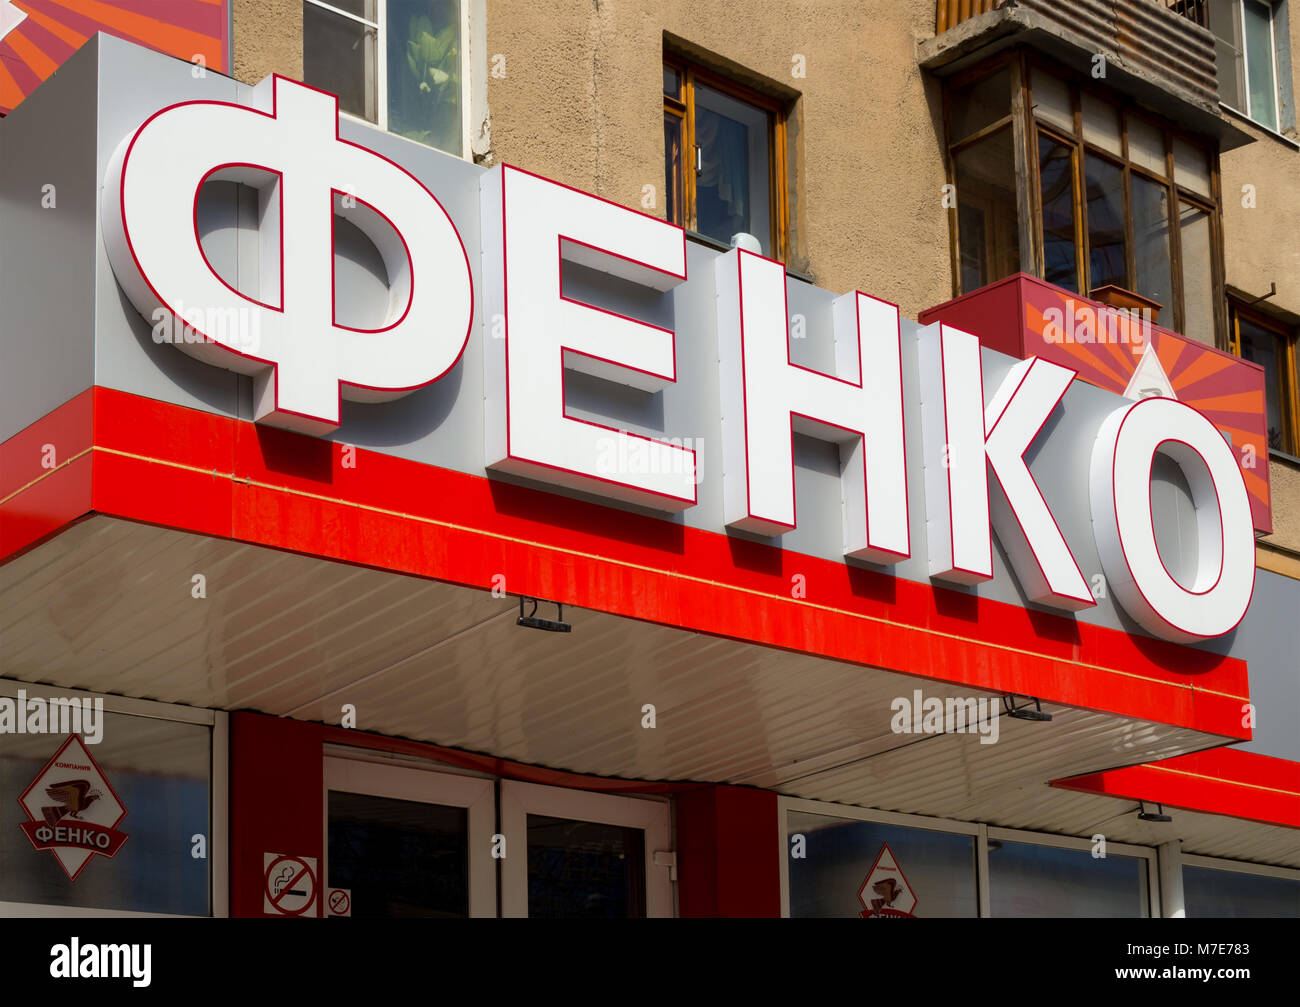 Who sells in Voronezh letters on the facade 62